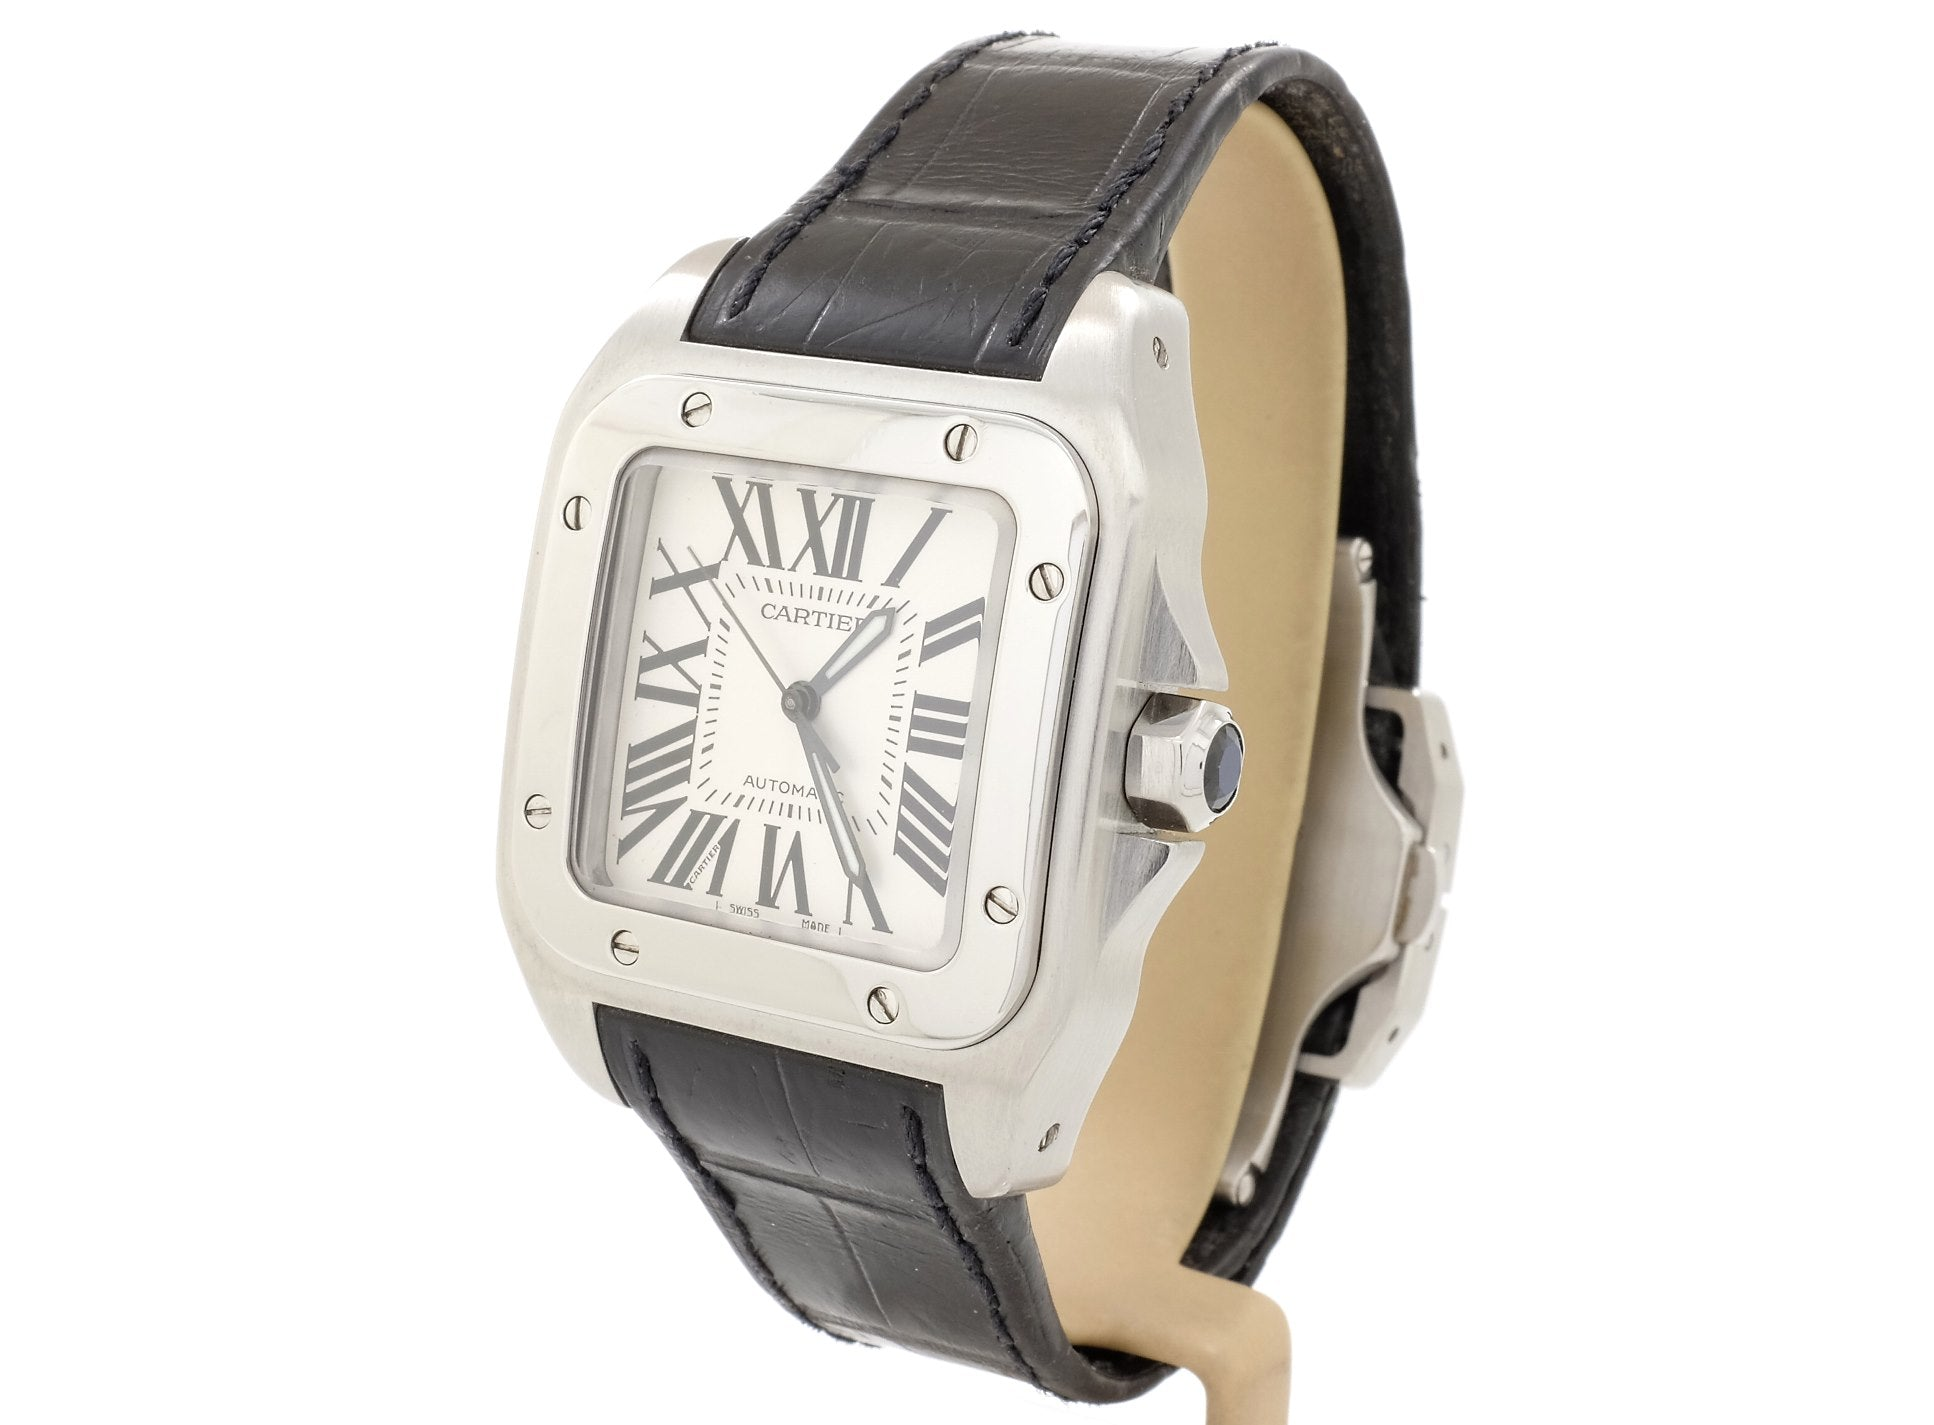 33mm 2007 Cartier SANTOS 100 (Auto) 2878 in Very Good Condition